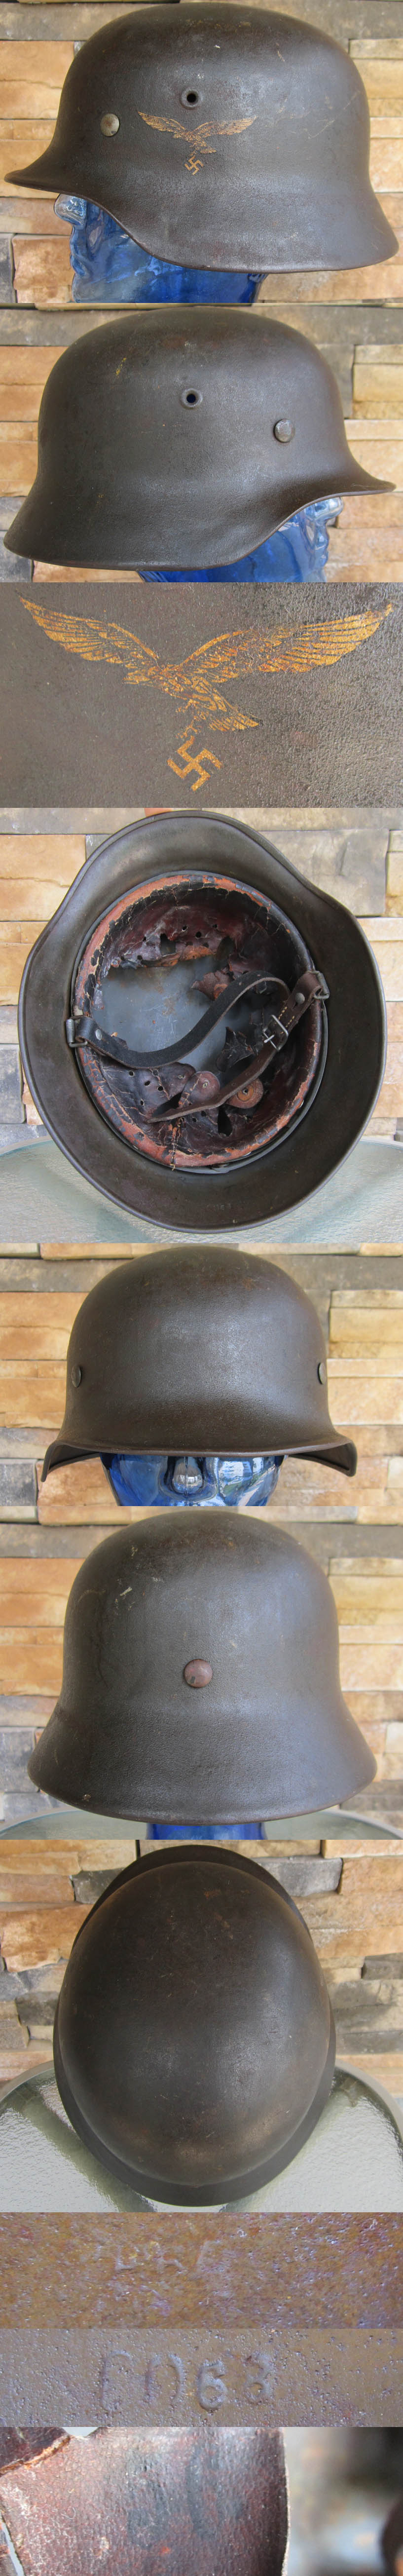 Single Decal M40 Luftwaffe Helmet by EF-64